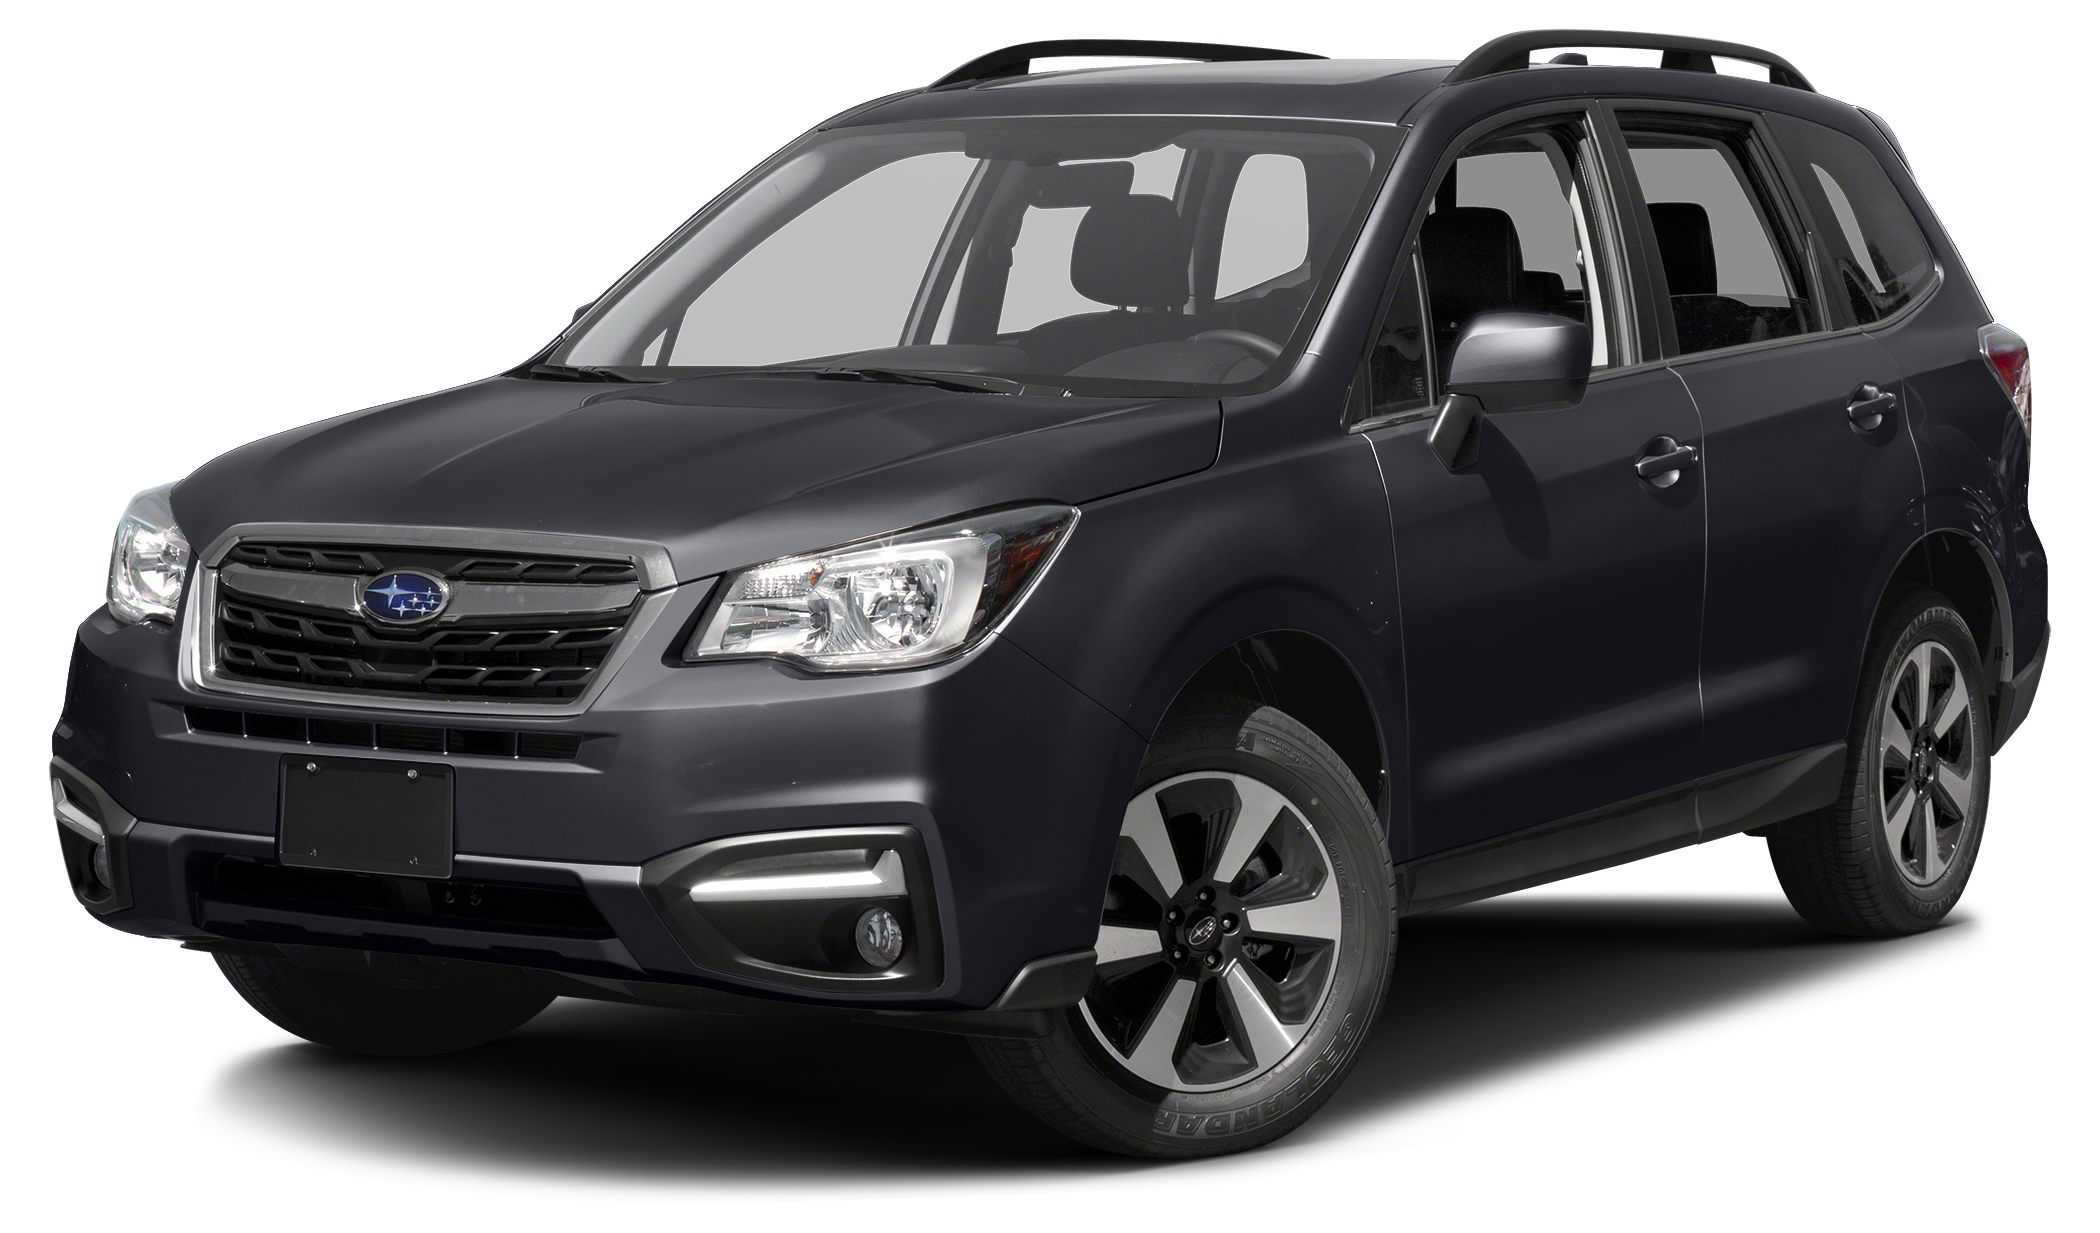 2017 subaru forester for sale in minneapolis mn. Black Bedroom Furniture Sets. Home Design Ideas